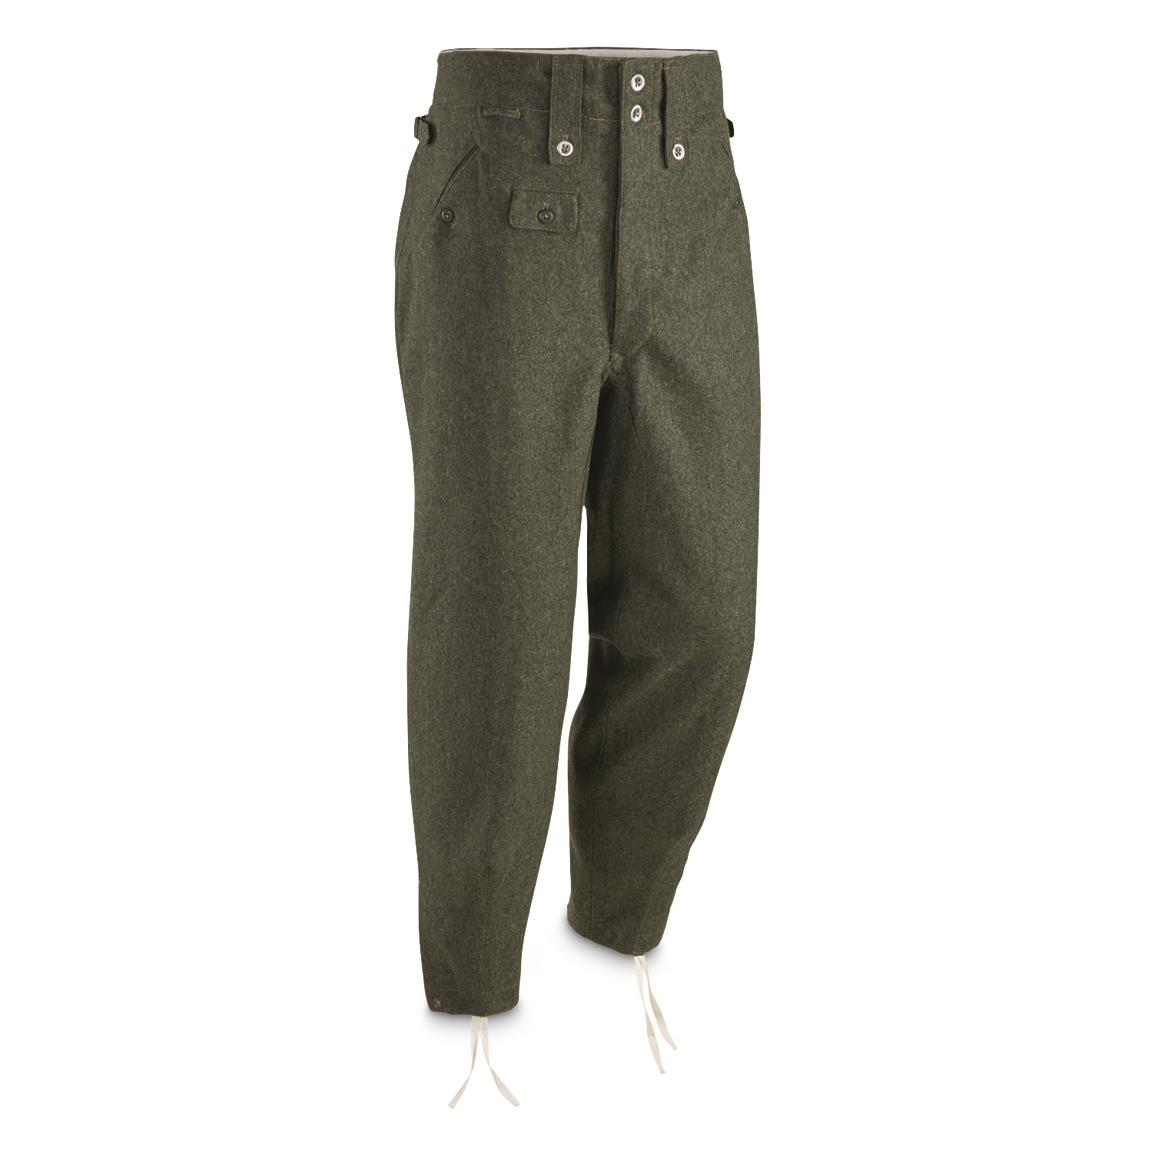 Specsignal Reproduction German Military M43 Wool Pants Ne...